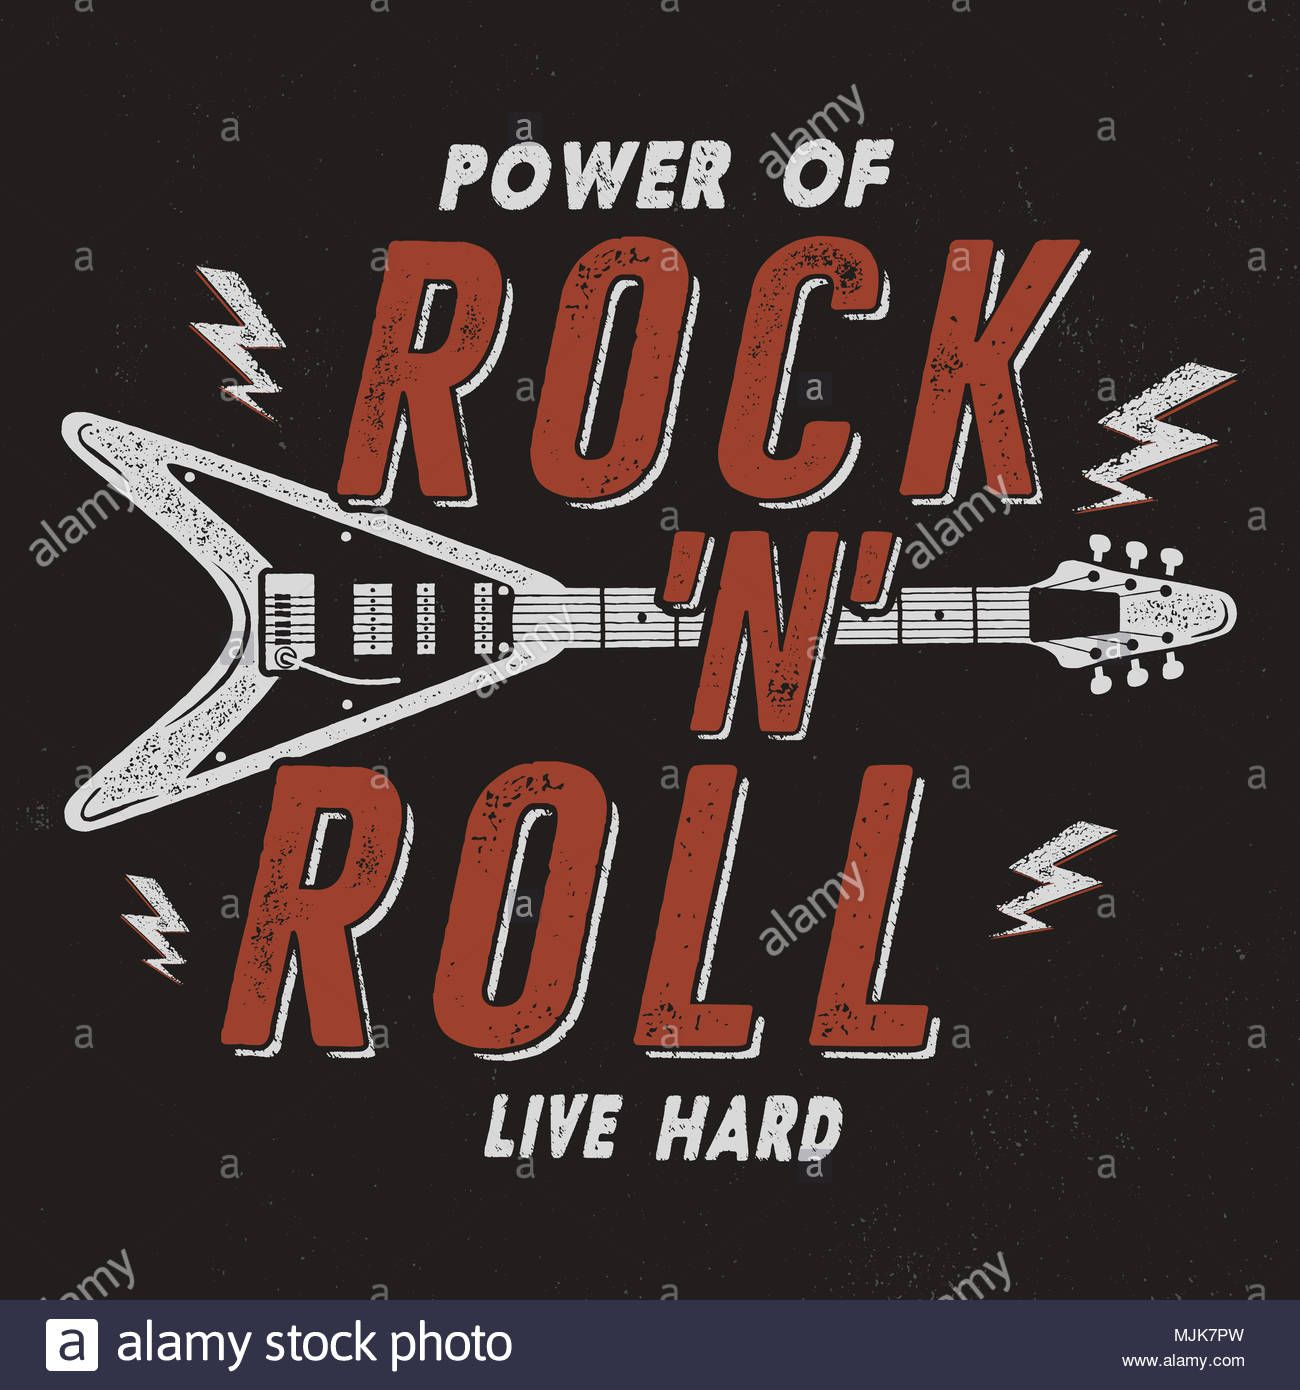 Download This Stock Image Vintage Hand Drawn Rock N Roll Poster Retro Music Background Musical Tee Graphics Desig Retro Music Rock Band Posters Retro Poster